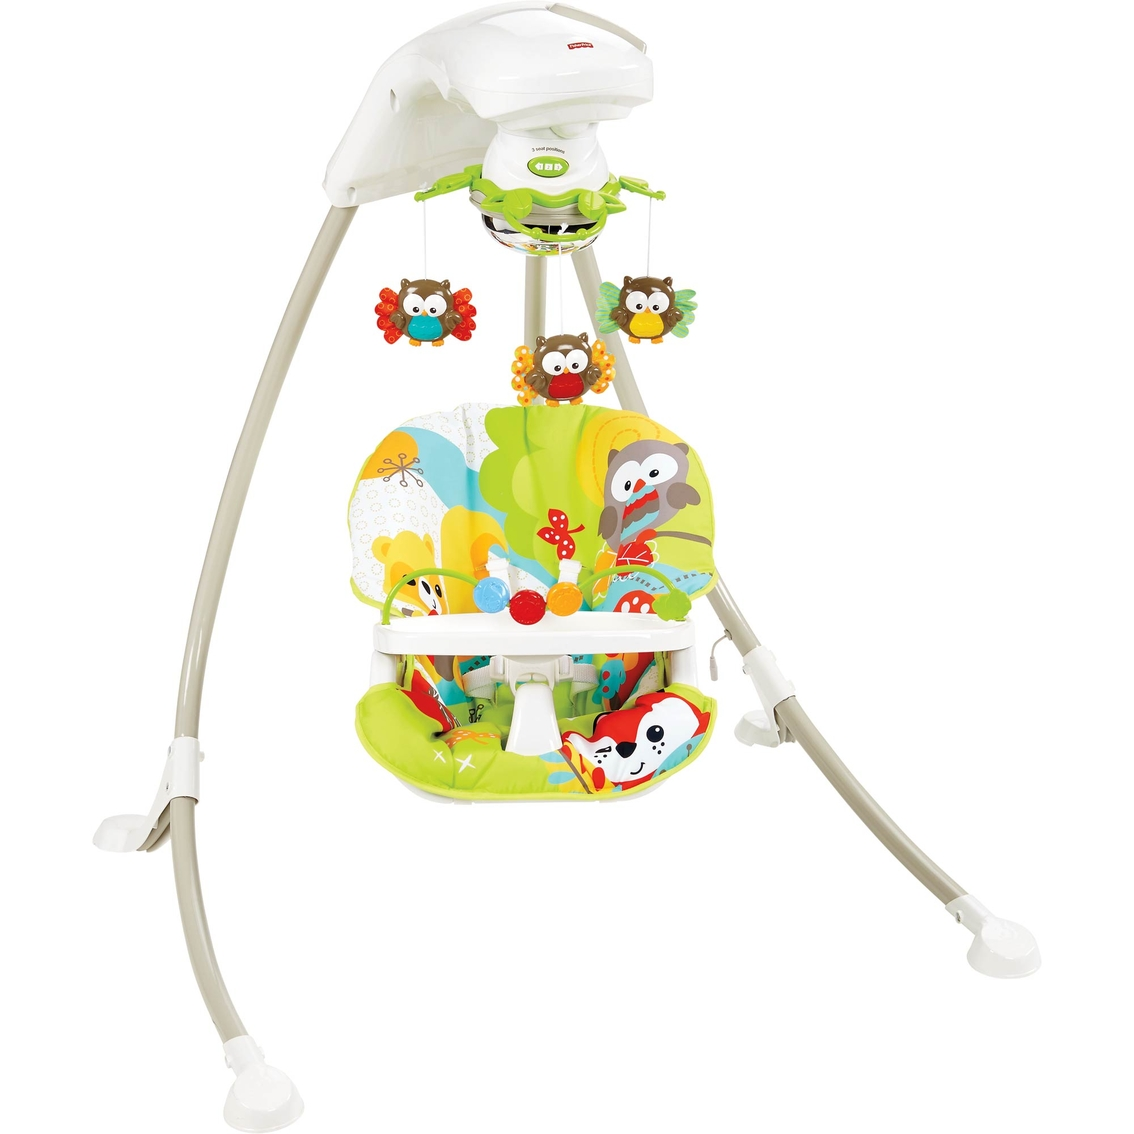 Catchy Woodland Friends Cradle Swing Swings Bouncers Fisher Price Cradle Swing Nature S Touch Manual Fisher Price Cradle Swing Rainforest baby Fisher Price Cradle Swing